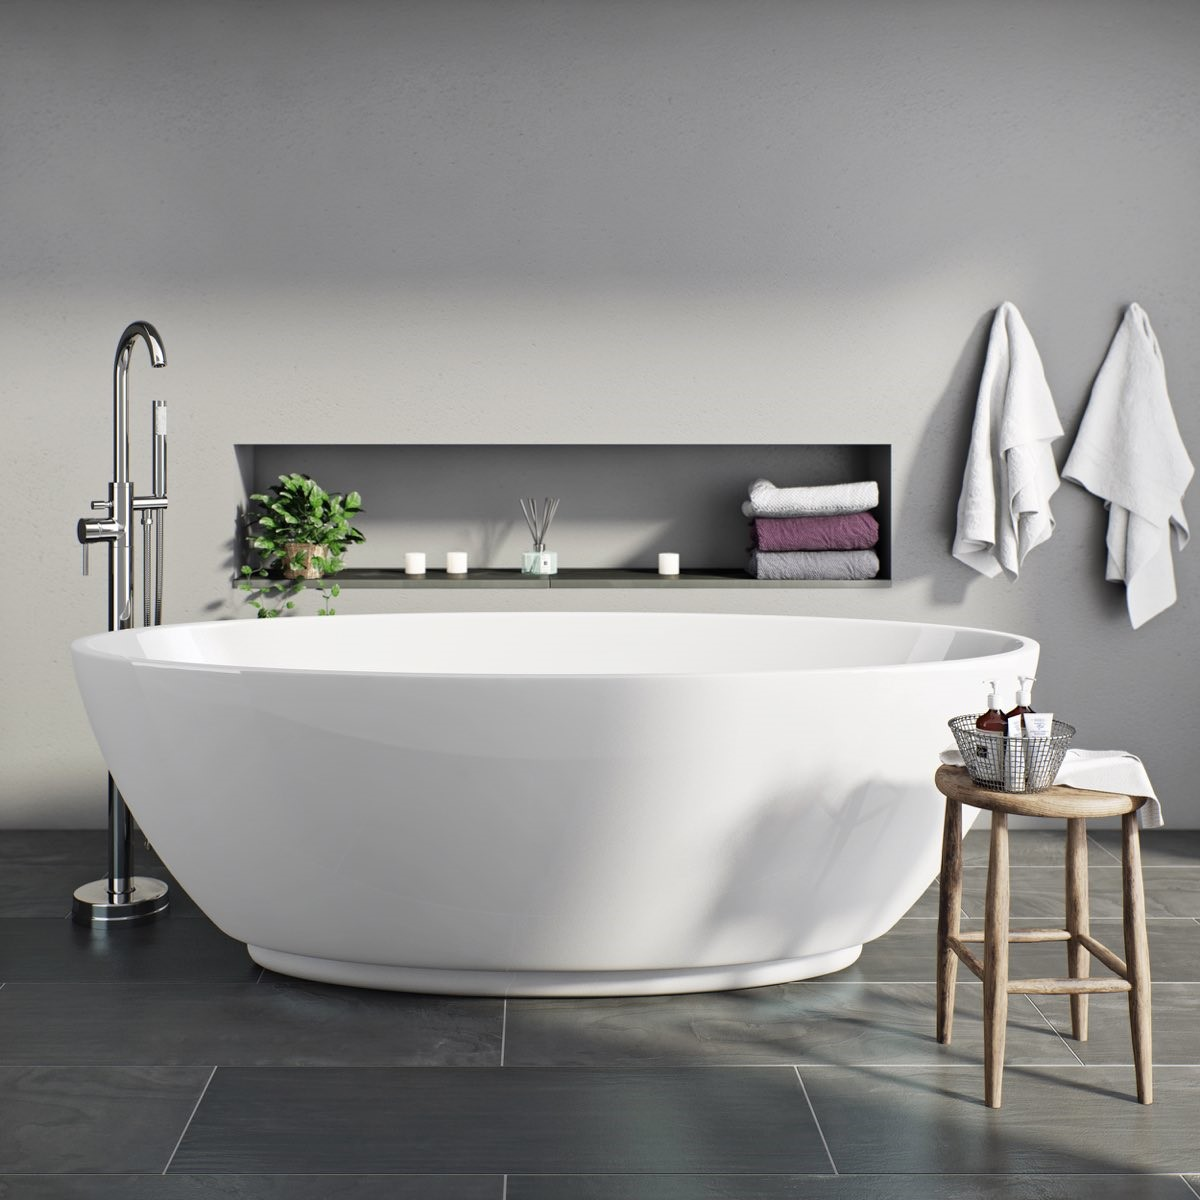 Charming How To Paint A Bathtub Huge Paint For Tubs Clean Can You Paint A Tub Painting Tub Youthful Bathtub Refinishing Companies Fresh Paint A Tub